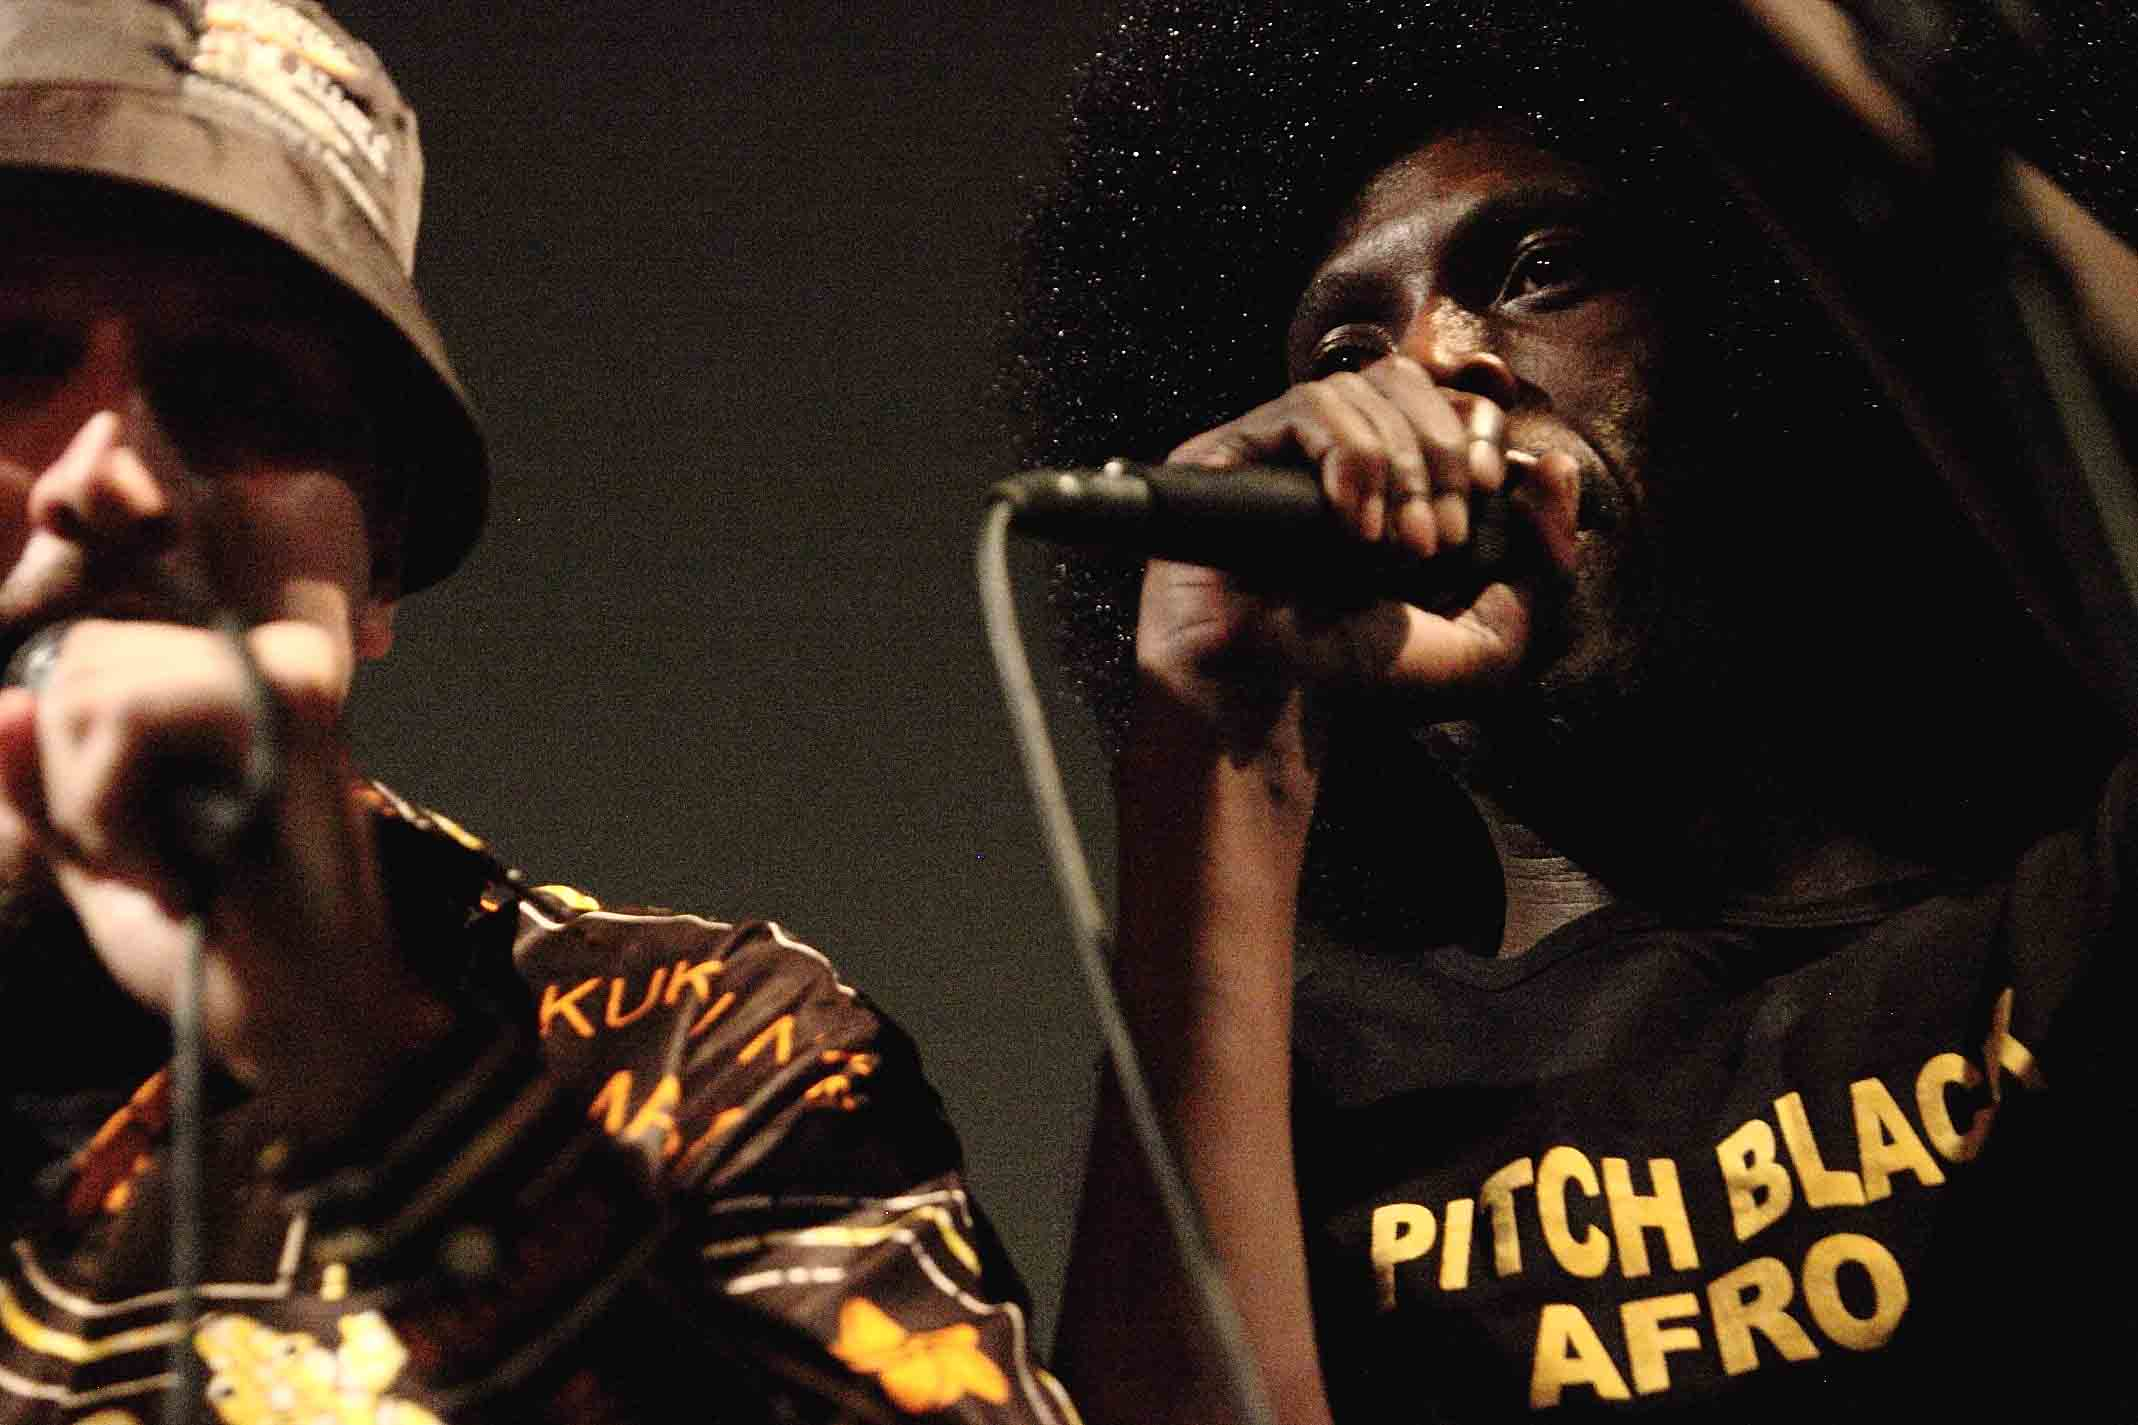 Bombshelter Beast - Pitch Black Afro & Pulesmall